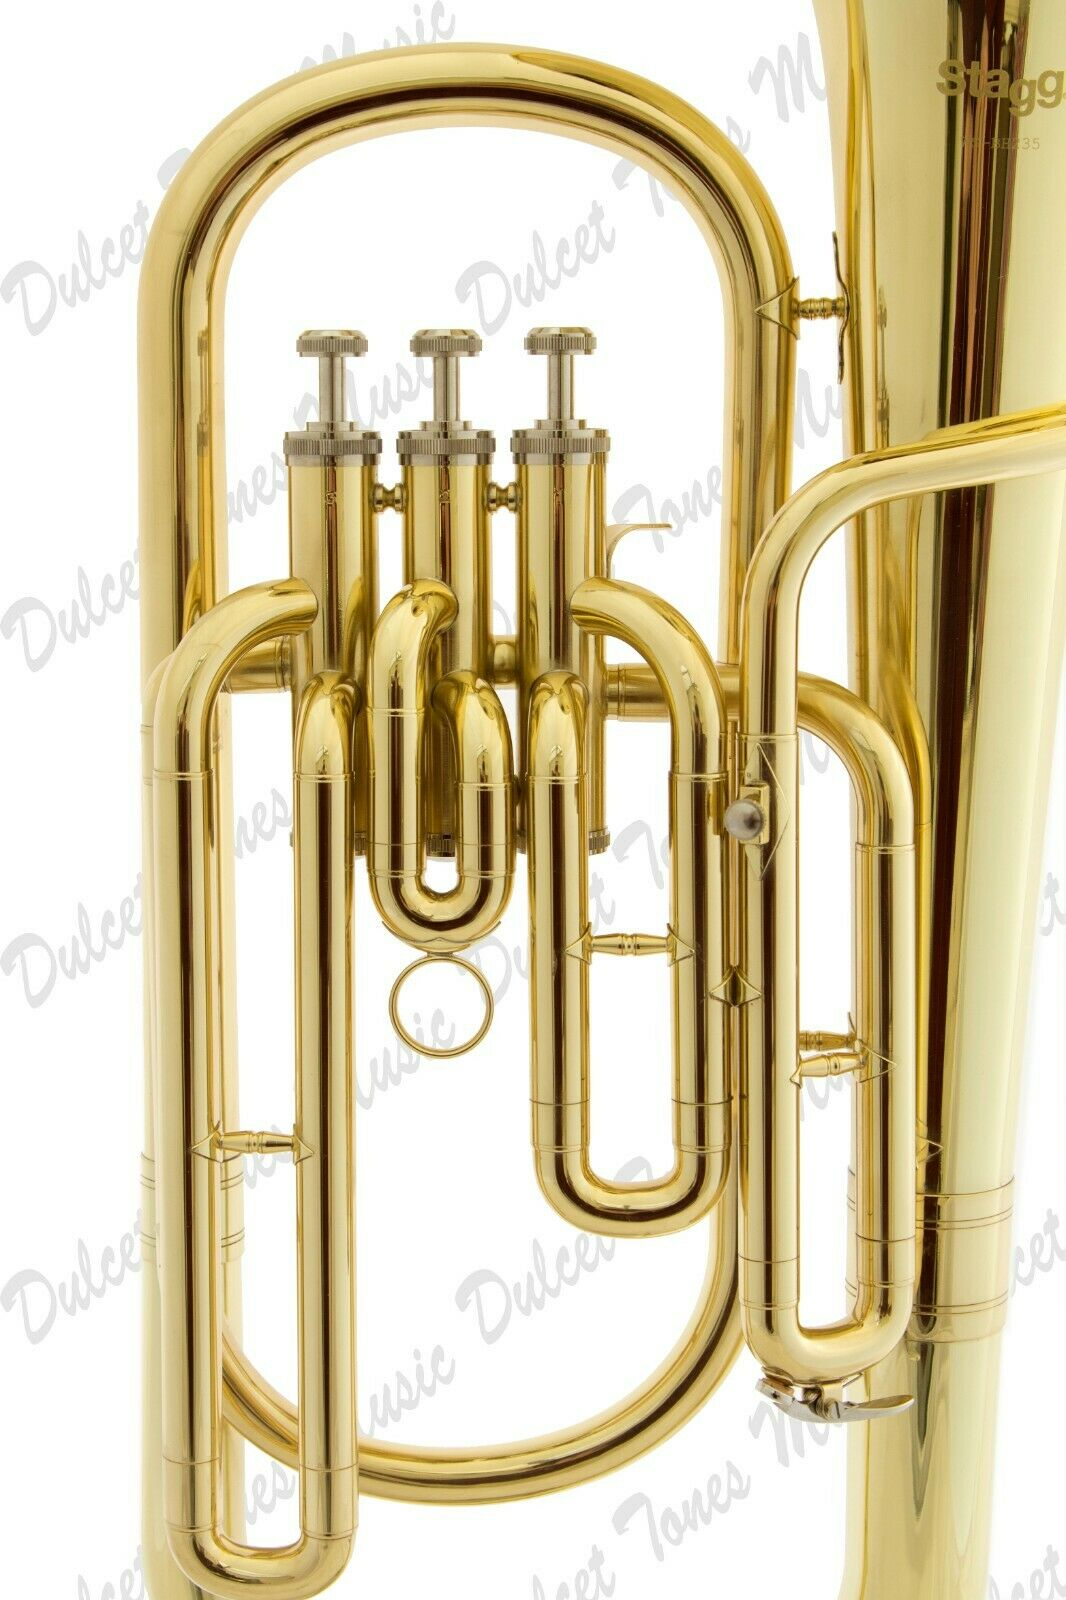 Musical Instruments & Gear Brass Stagg Bb Three Valve Baritone Horn Brass Body Clear Lacquer Finish Fast Postage